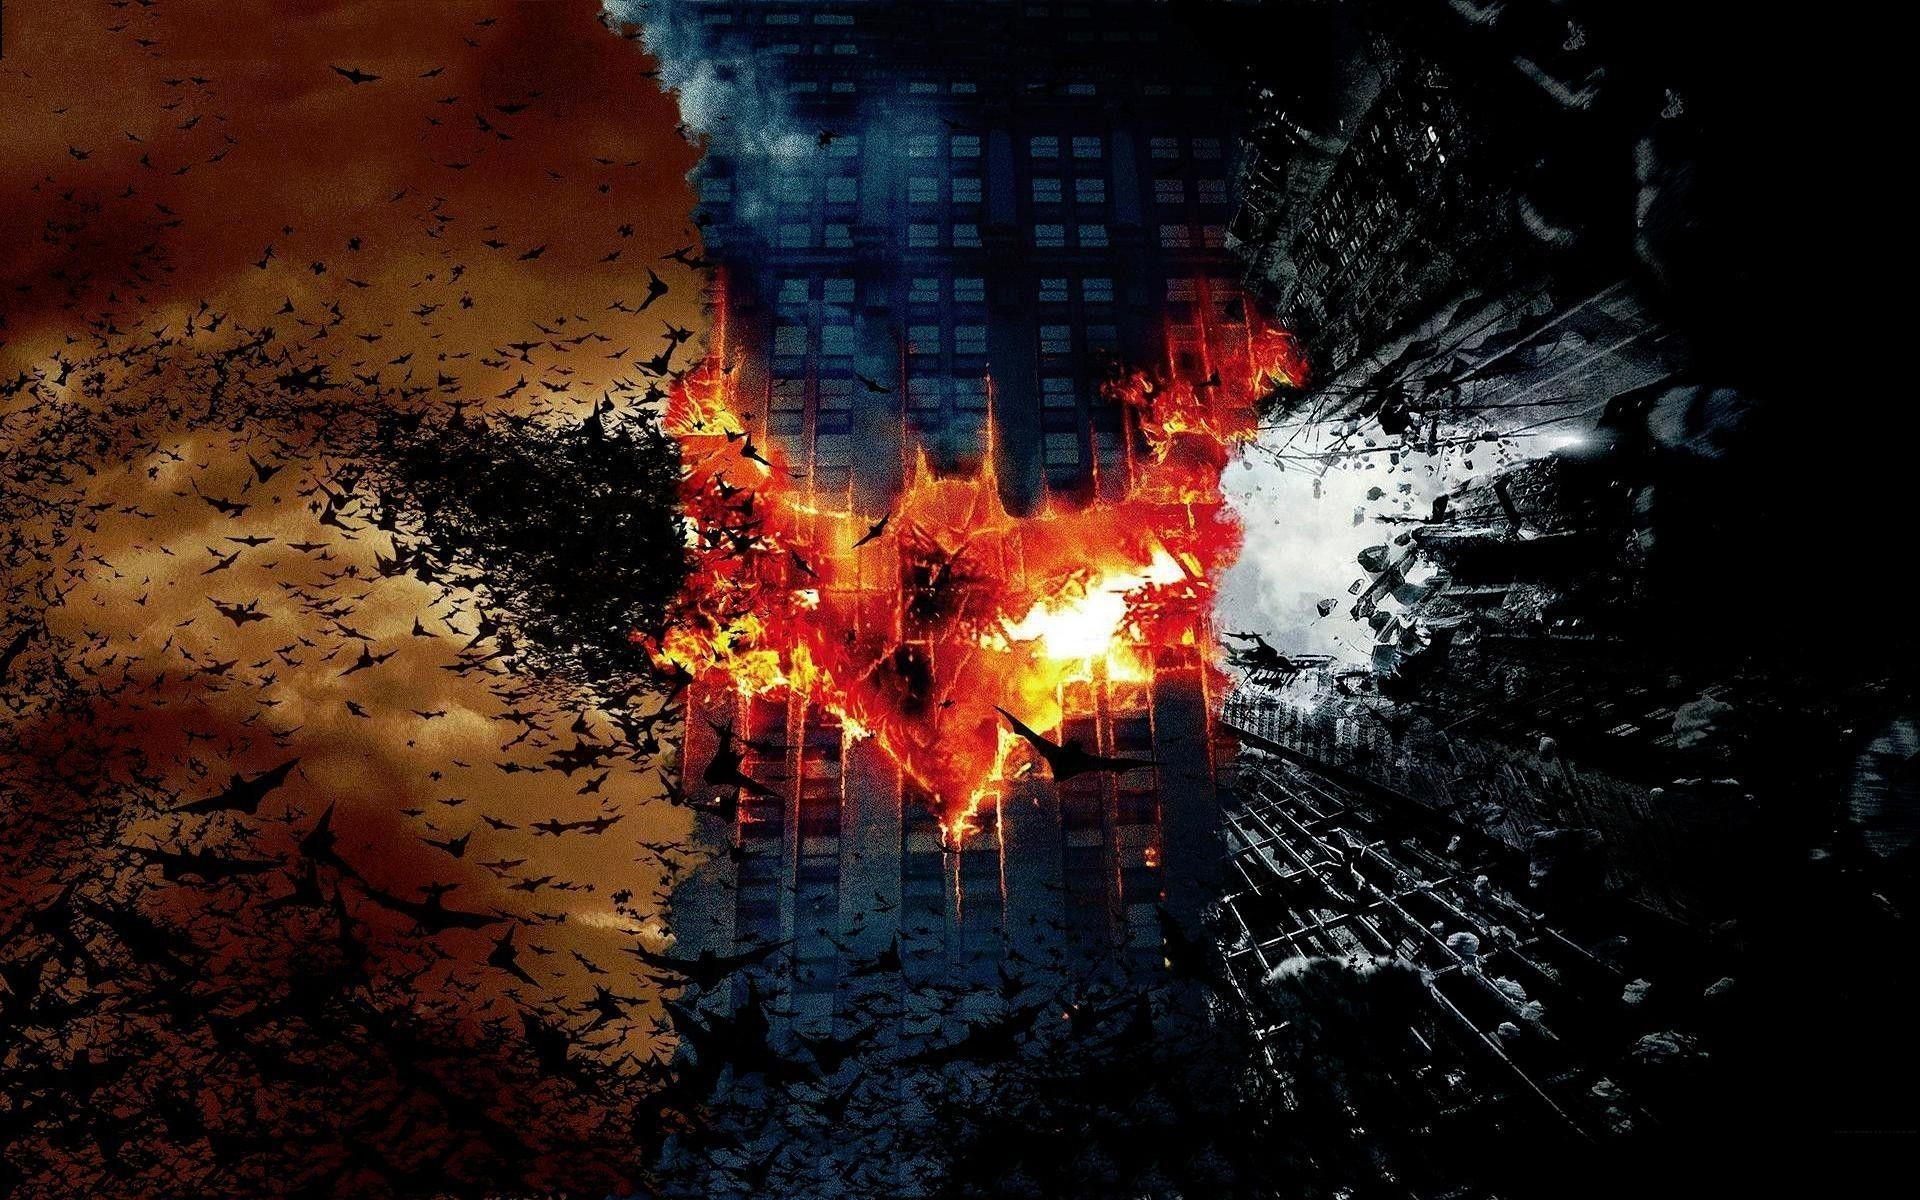 9 Batman Begins Wallpapers | Batman Begins Backgrounds